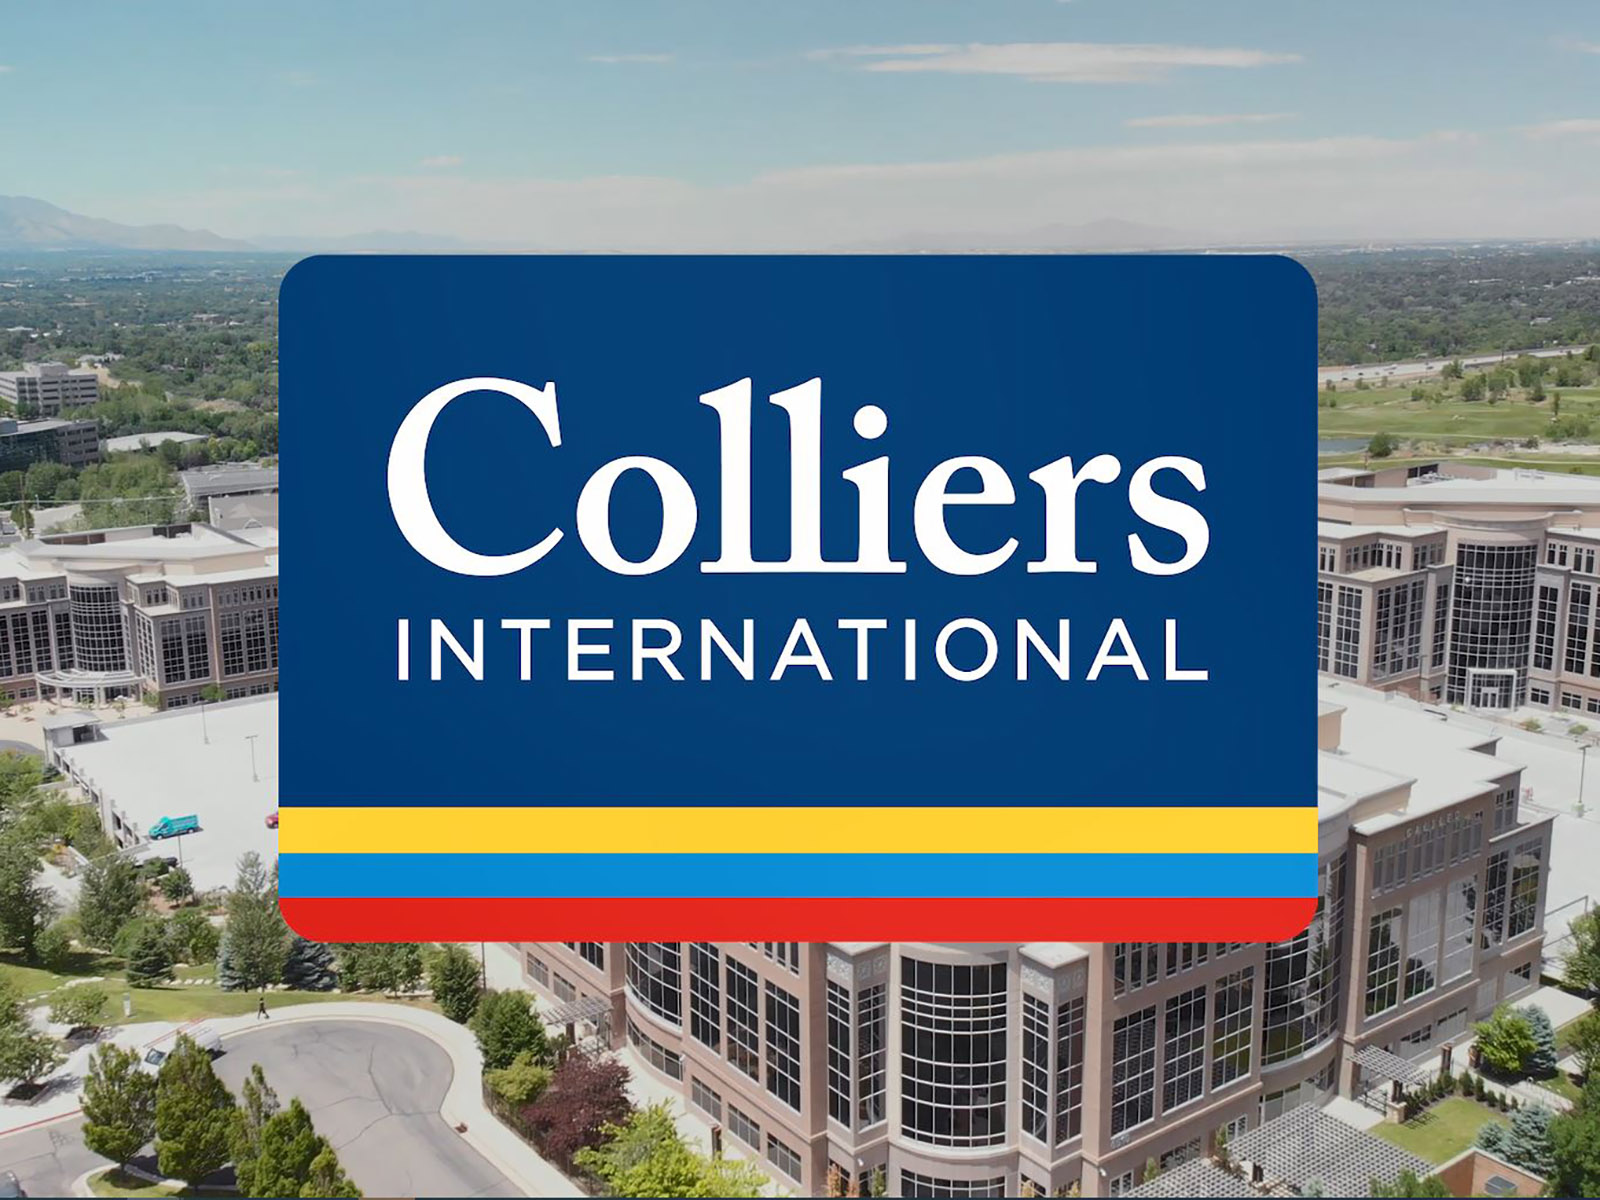 Colliers is a leading commercial real estate brokerage professional services and investment management company for landlords, tenants, and investors.